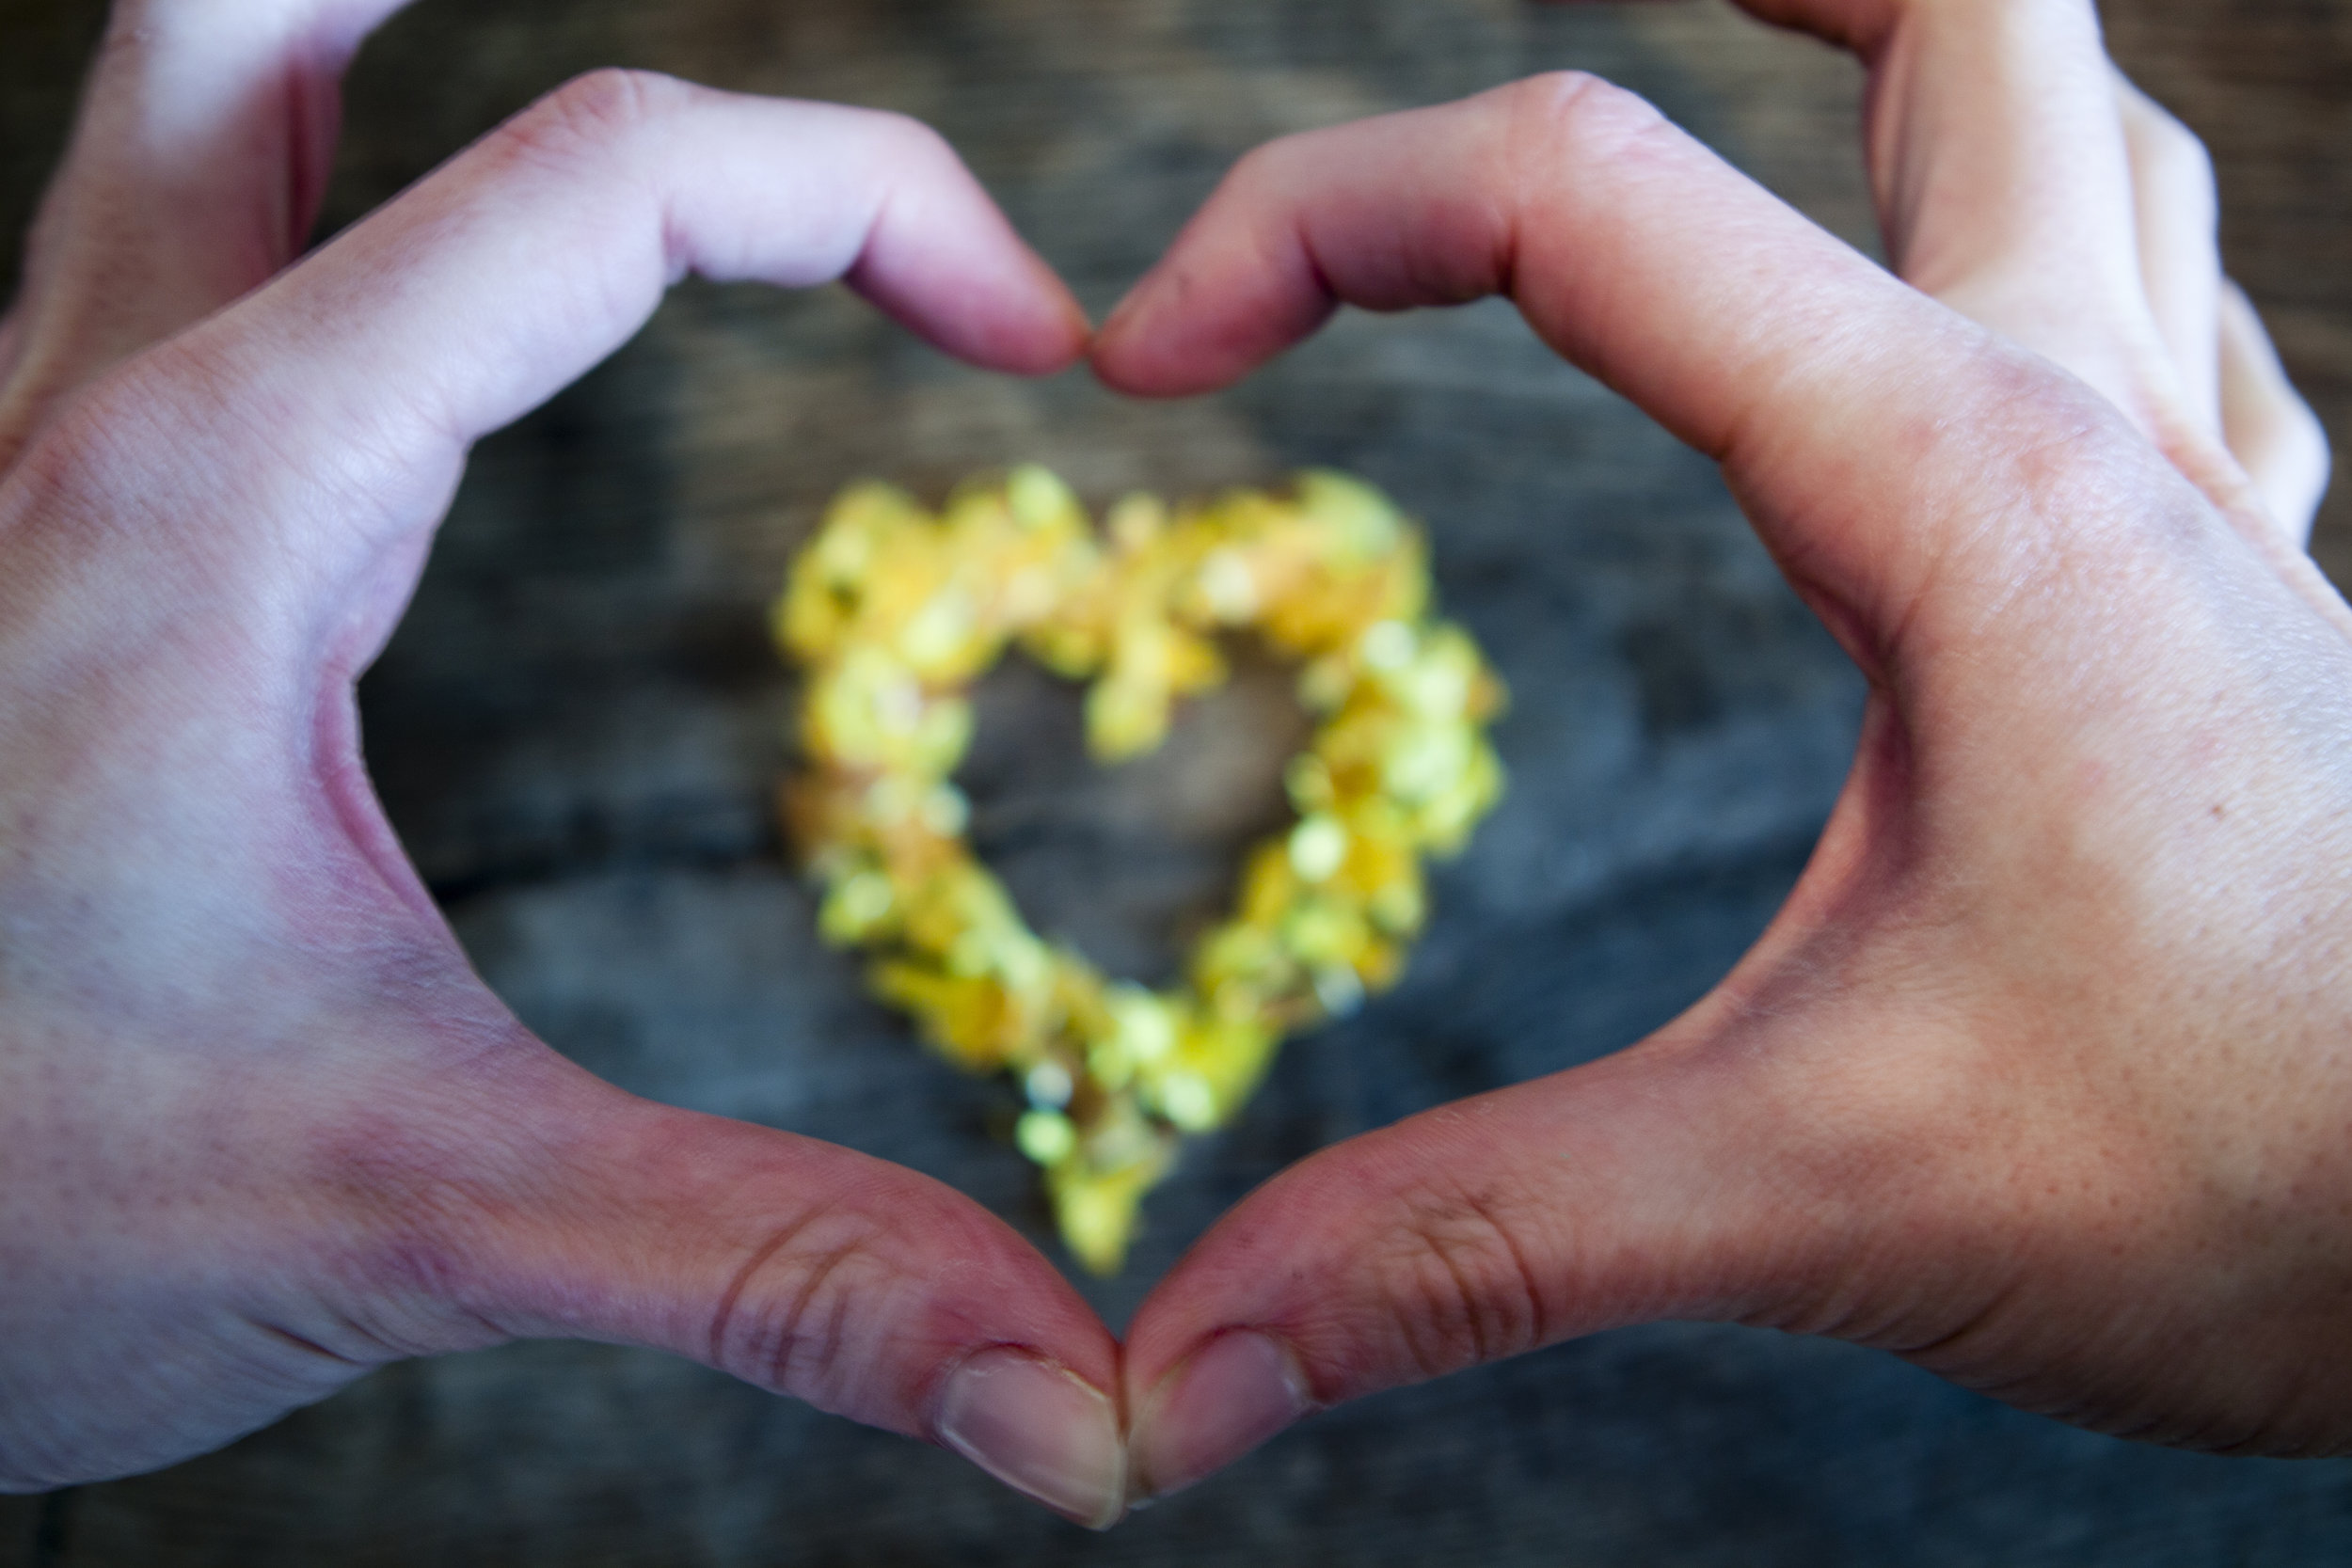 East Bay Psychotherapy can facilitate a loving closure of your marriage or partnership.